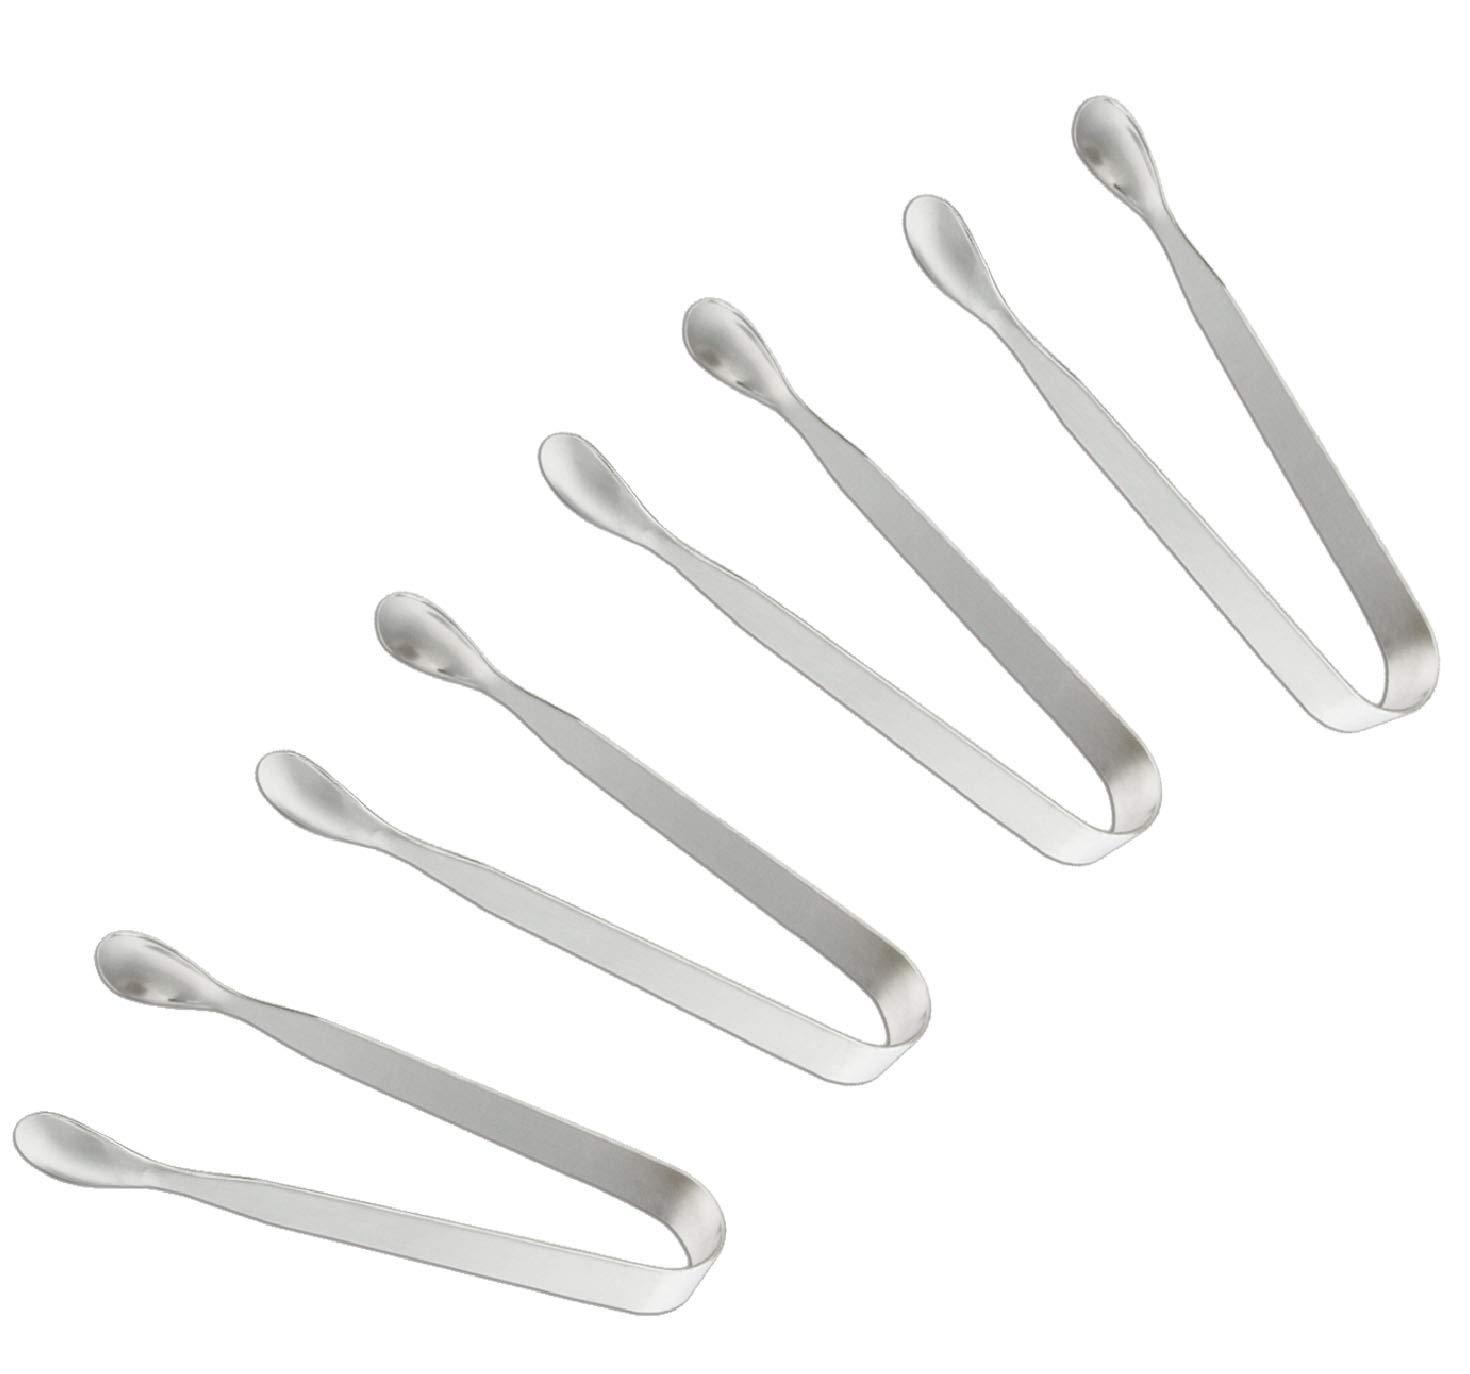 "SOLEADER Serving Tongs, Serving Utensils for Catering, Kitchen Tongs, Food-Grade Premium 304 Stainless Steel Tongs, Heavy Duty (4.5"" Appetizer Tongs)"